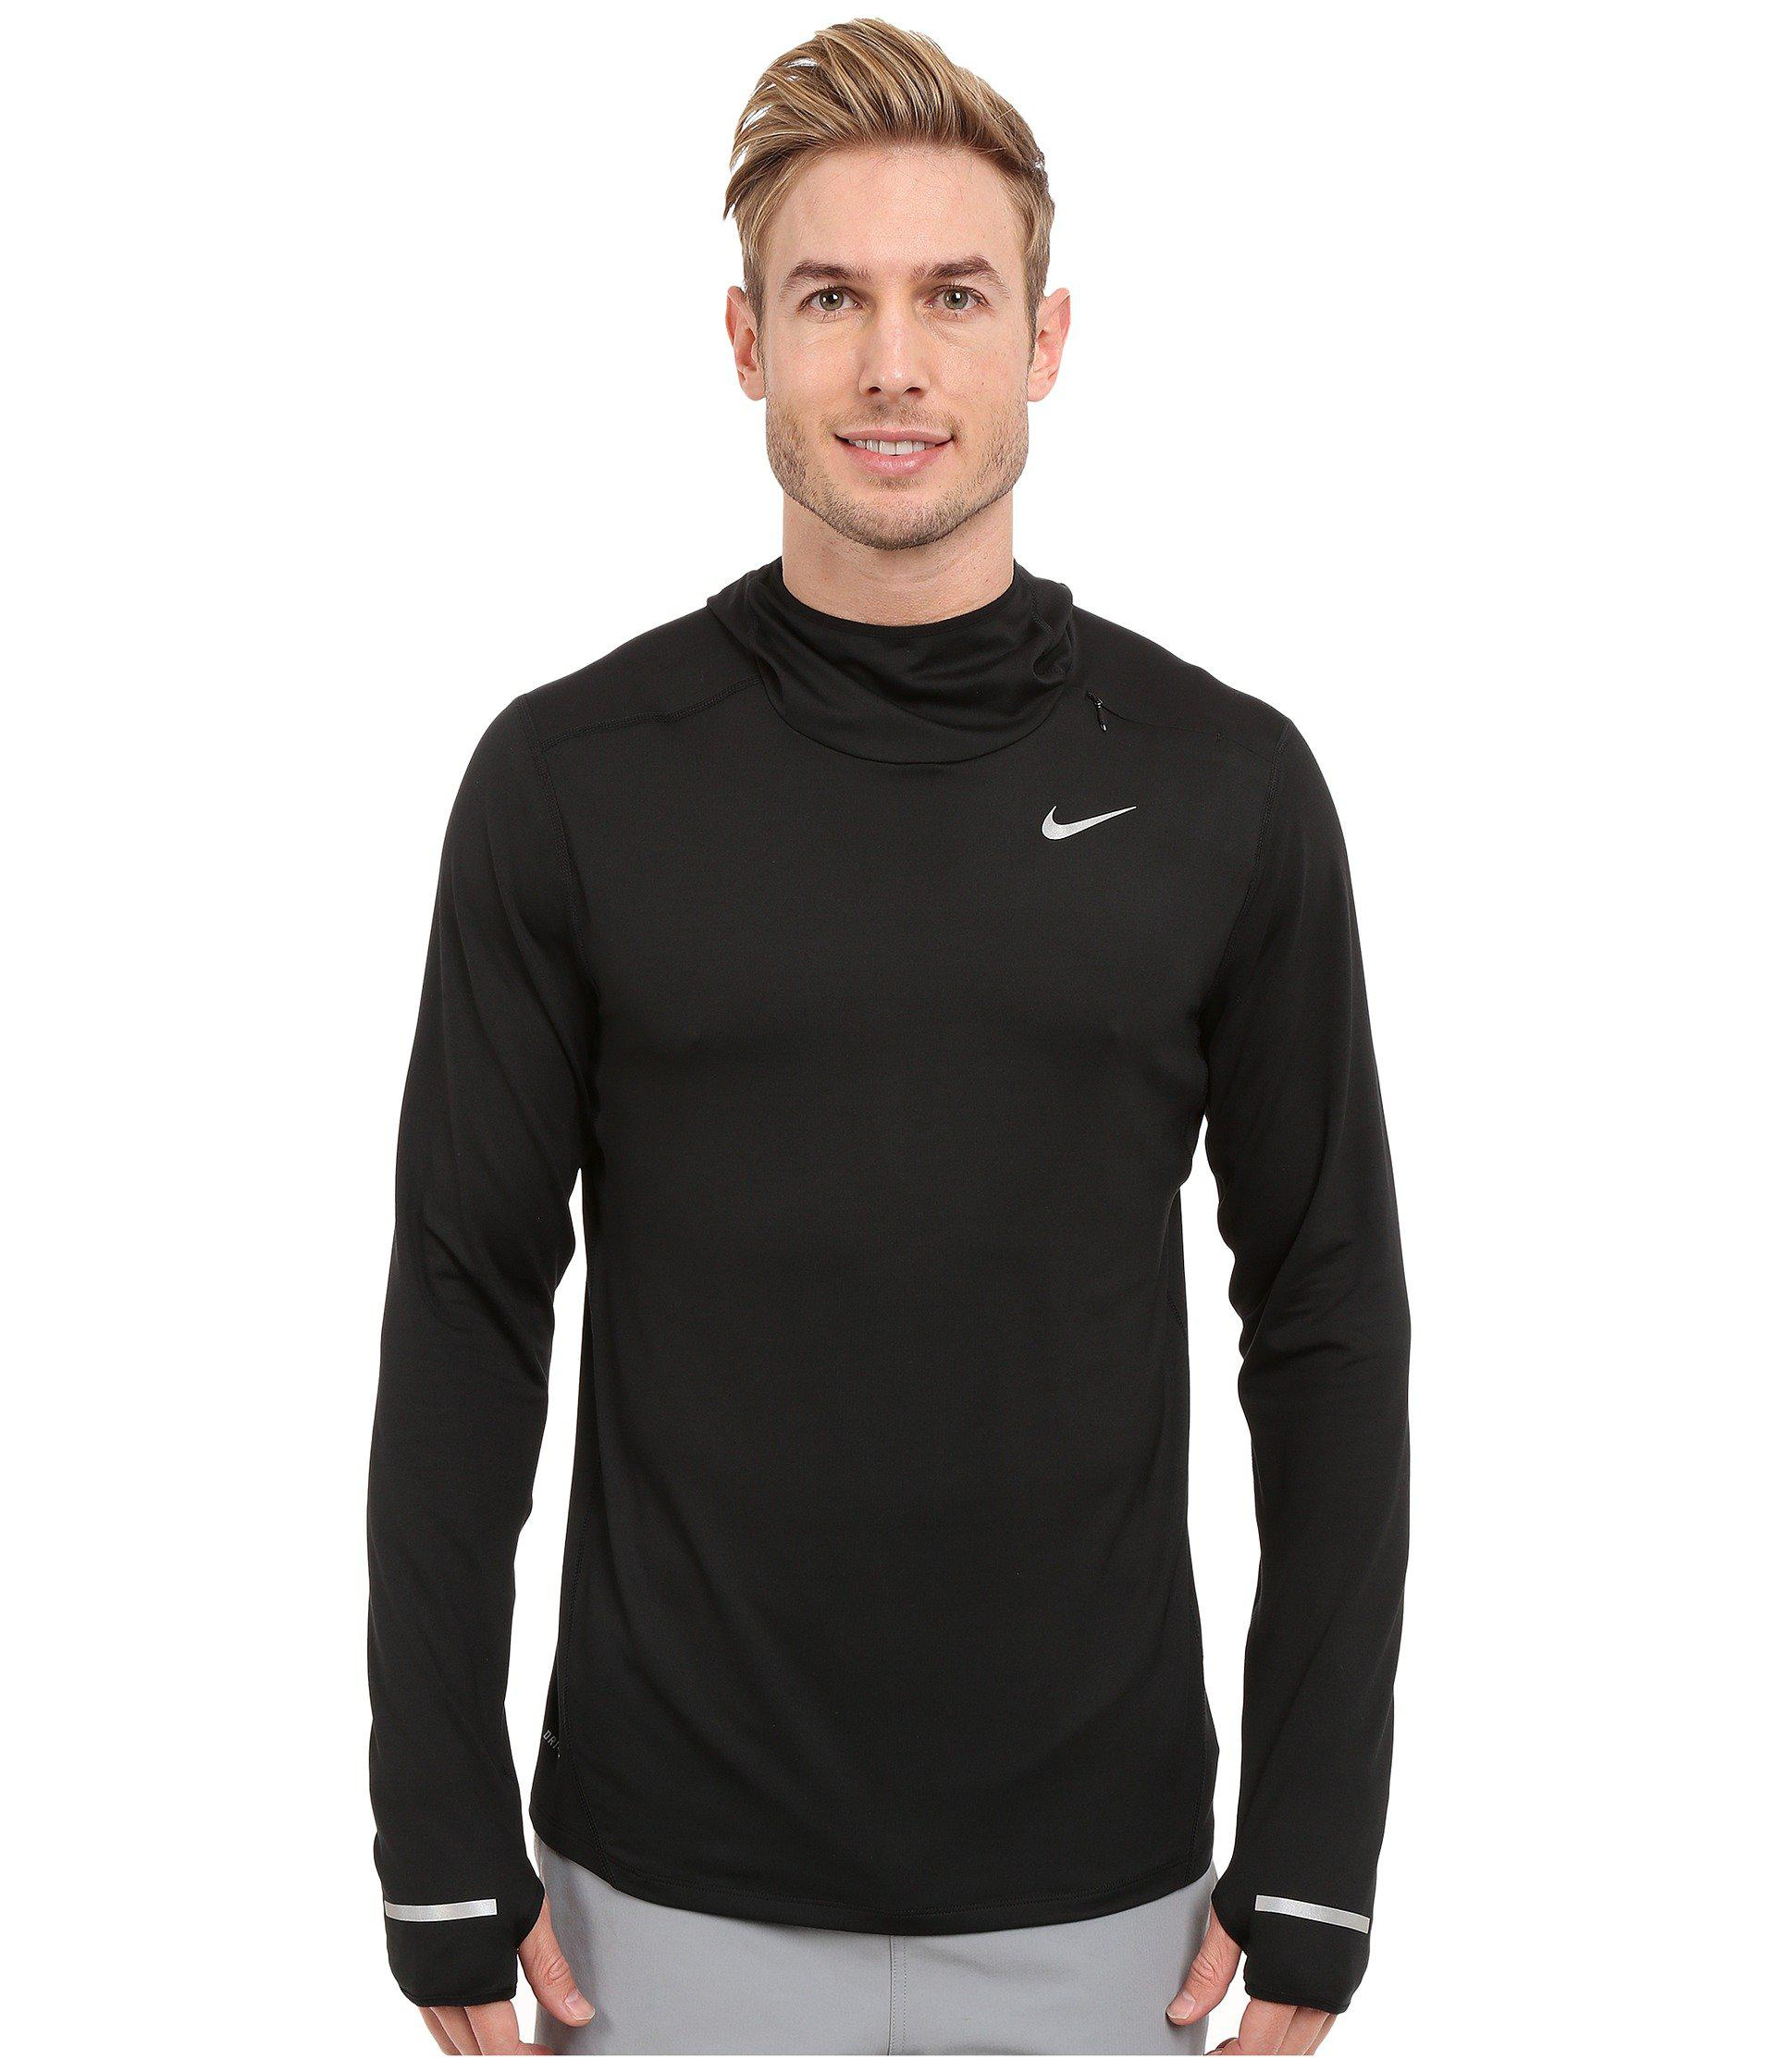 39961a1ac7bbf Lyst - Nike Dry Element Running Hoodie in Black for Men